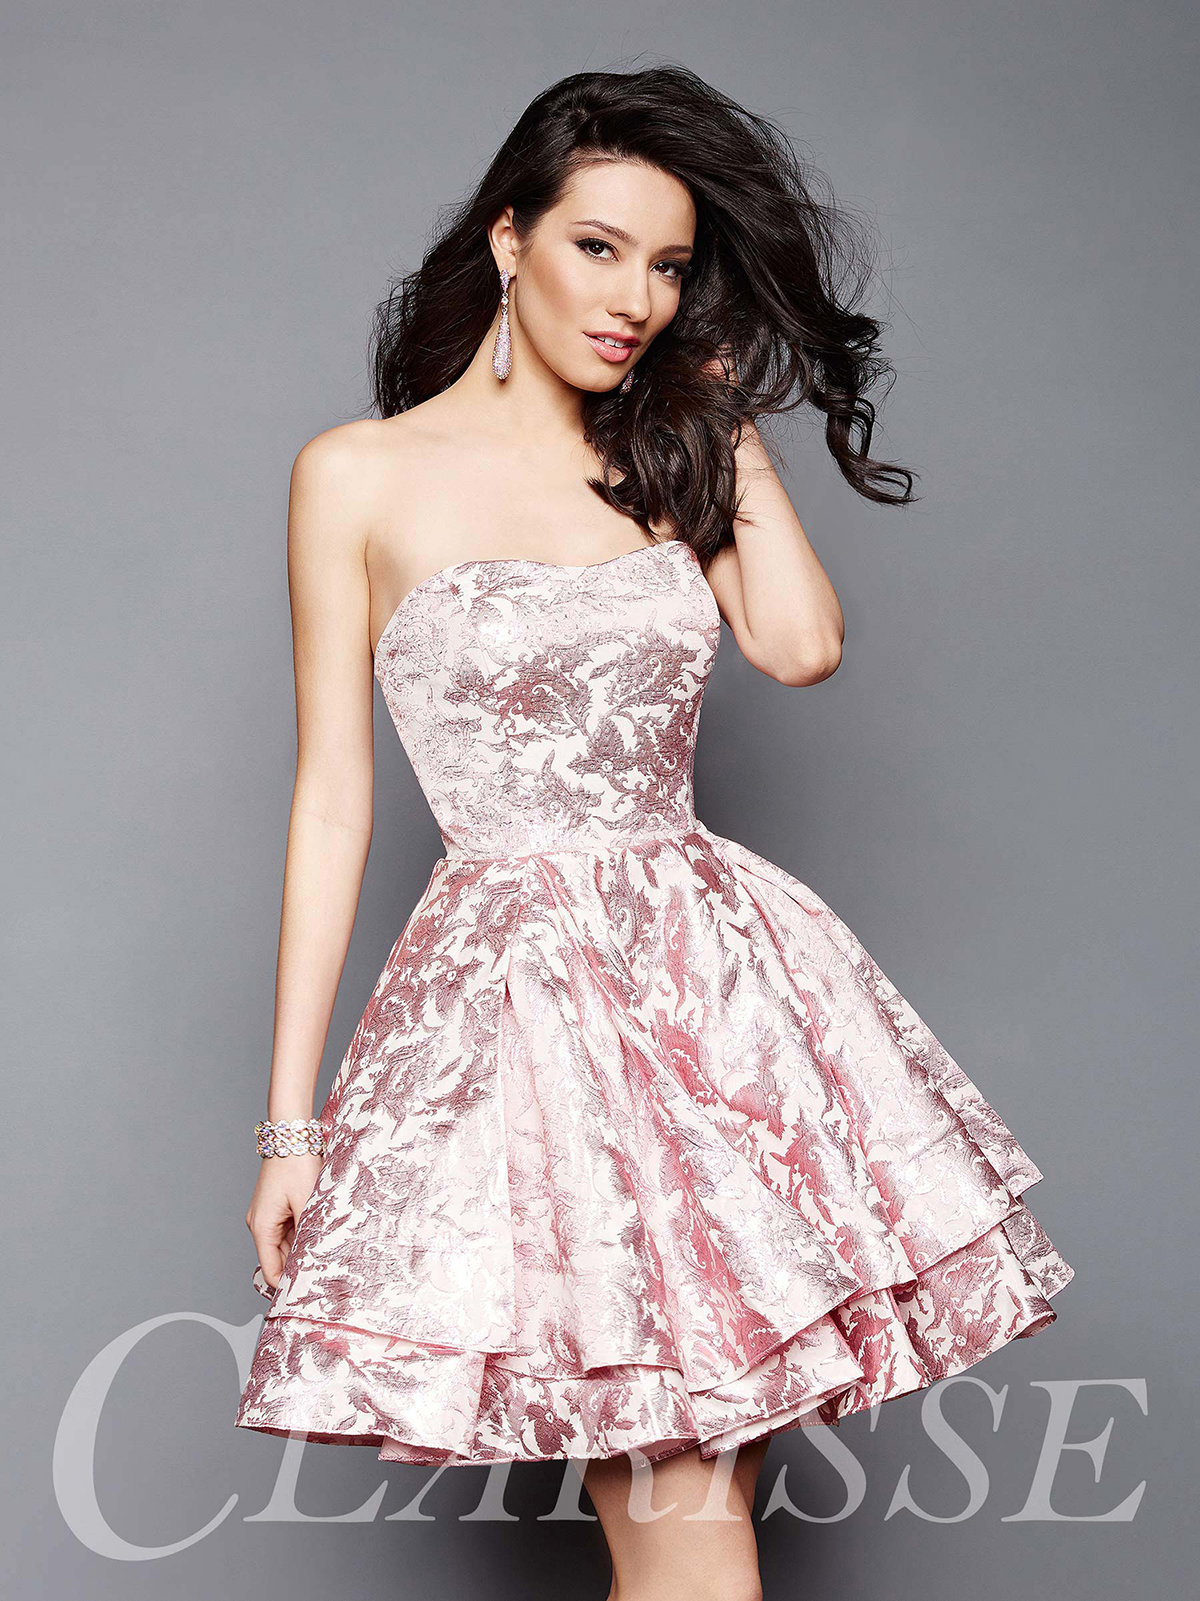 Clarisse Homecoming Dress 3310 | Promgirl.net